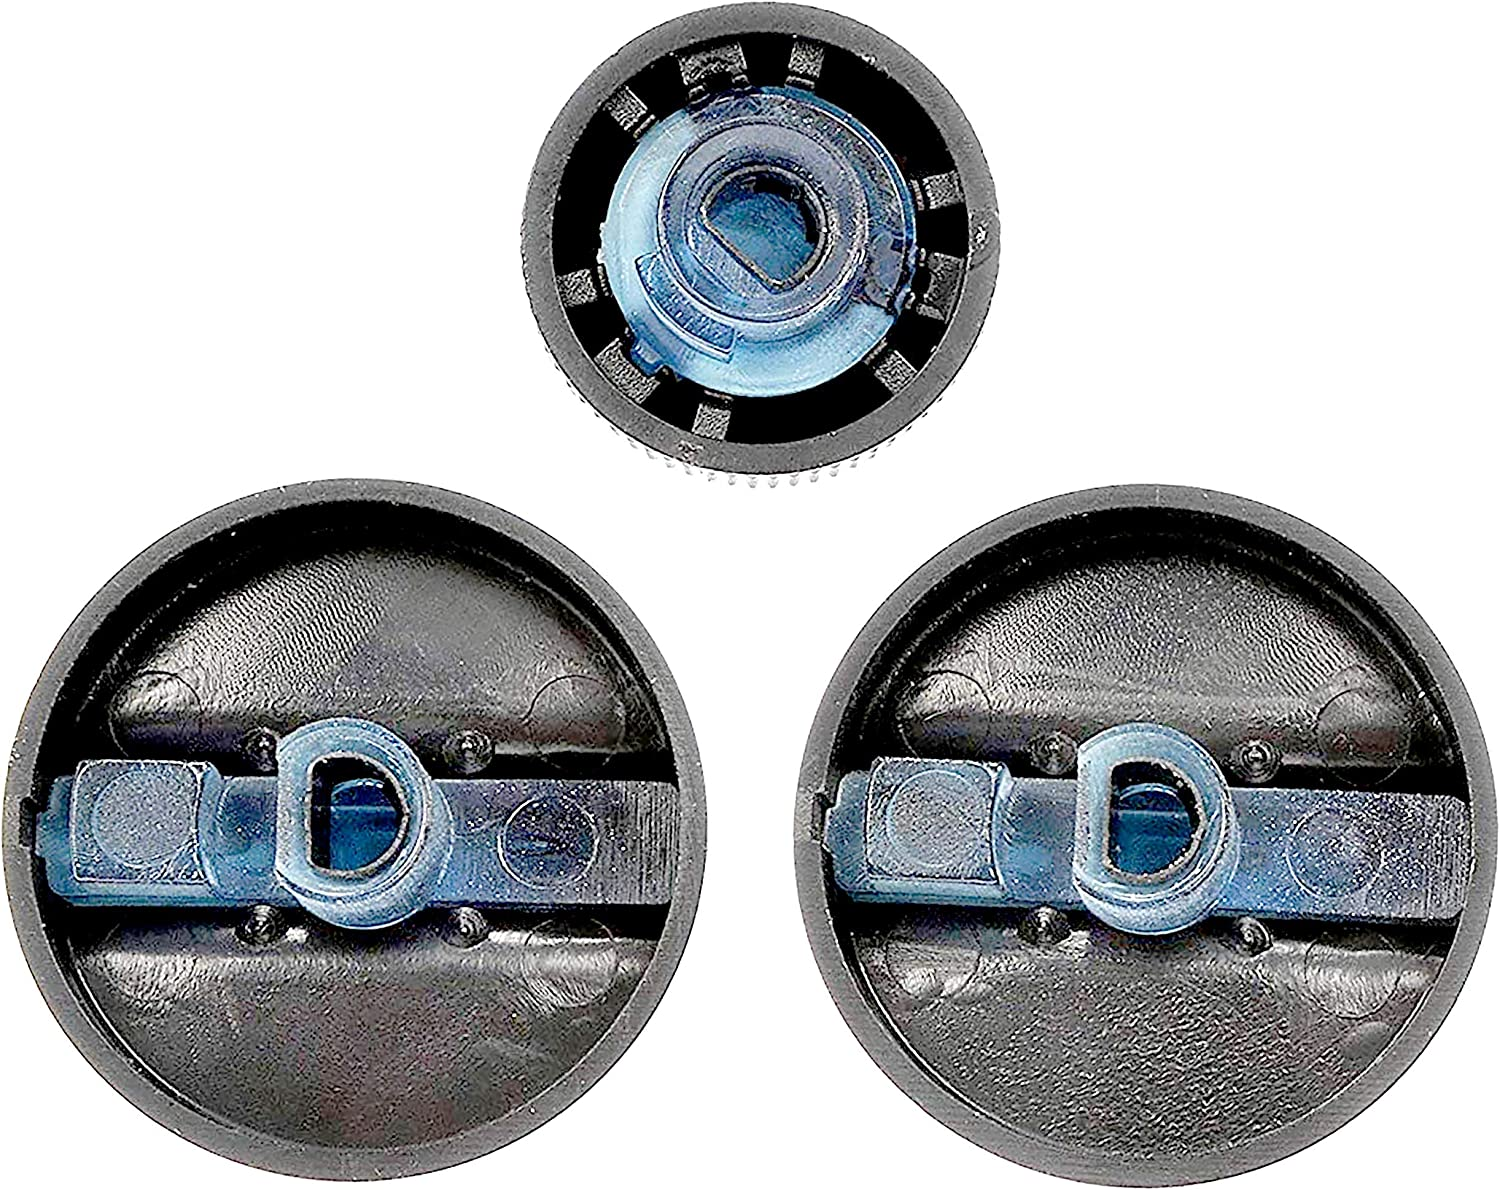 APDTY 117374 AC Heat HVAC Control Head Replacement Control Knob Set For 1994-1997 Dodge Ram 1500 2500 3500 Pickup Includes 2 HVAC Control Knobs = 04882482, 1 Blower Speed Control Knob = 04882511